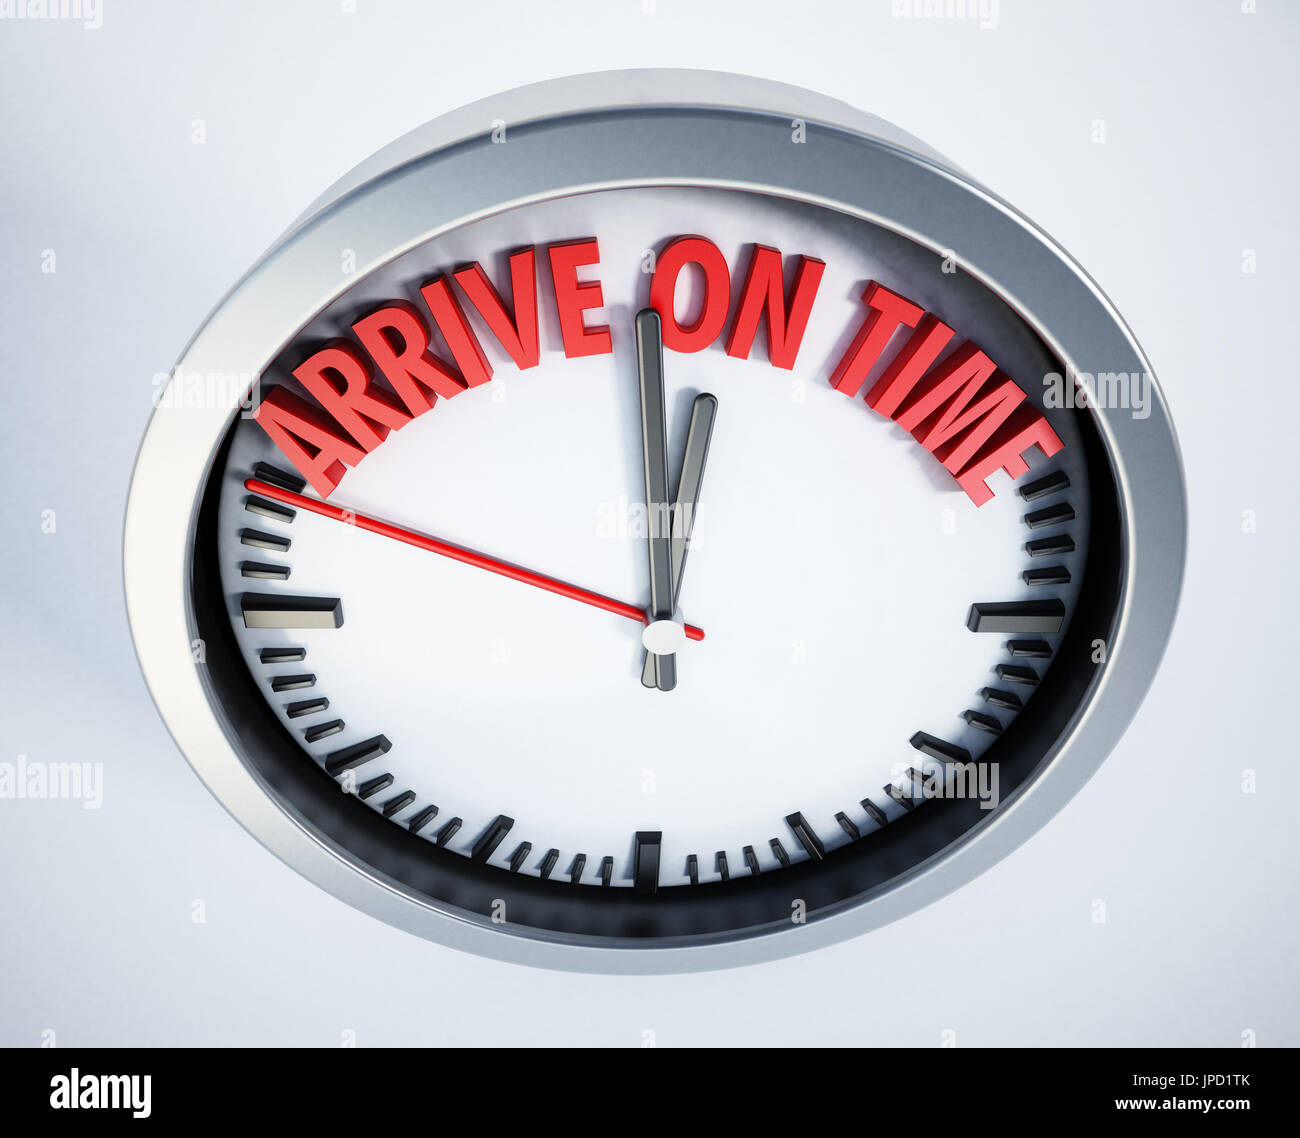 Clock with arrive on time text. 3D illustration. - Stock Image